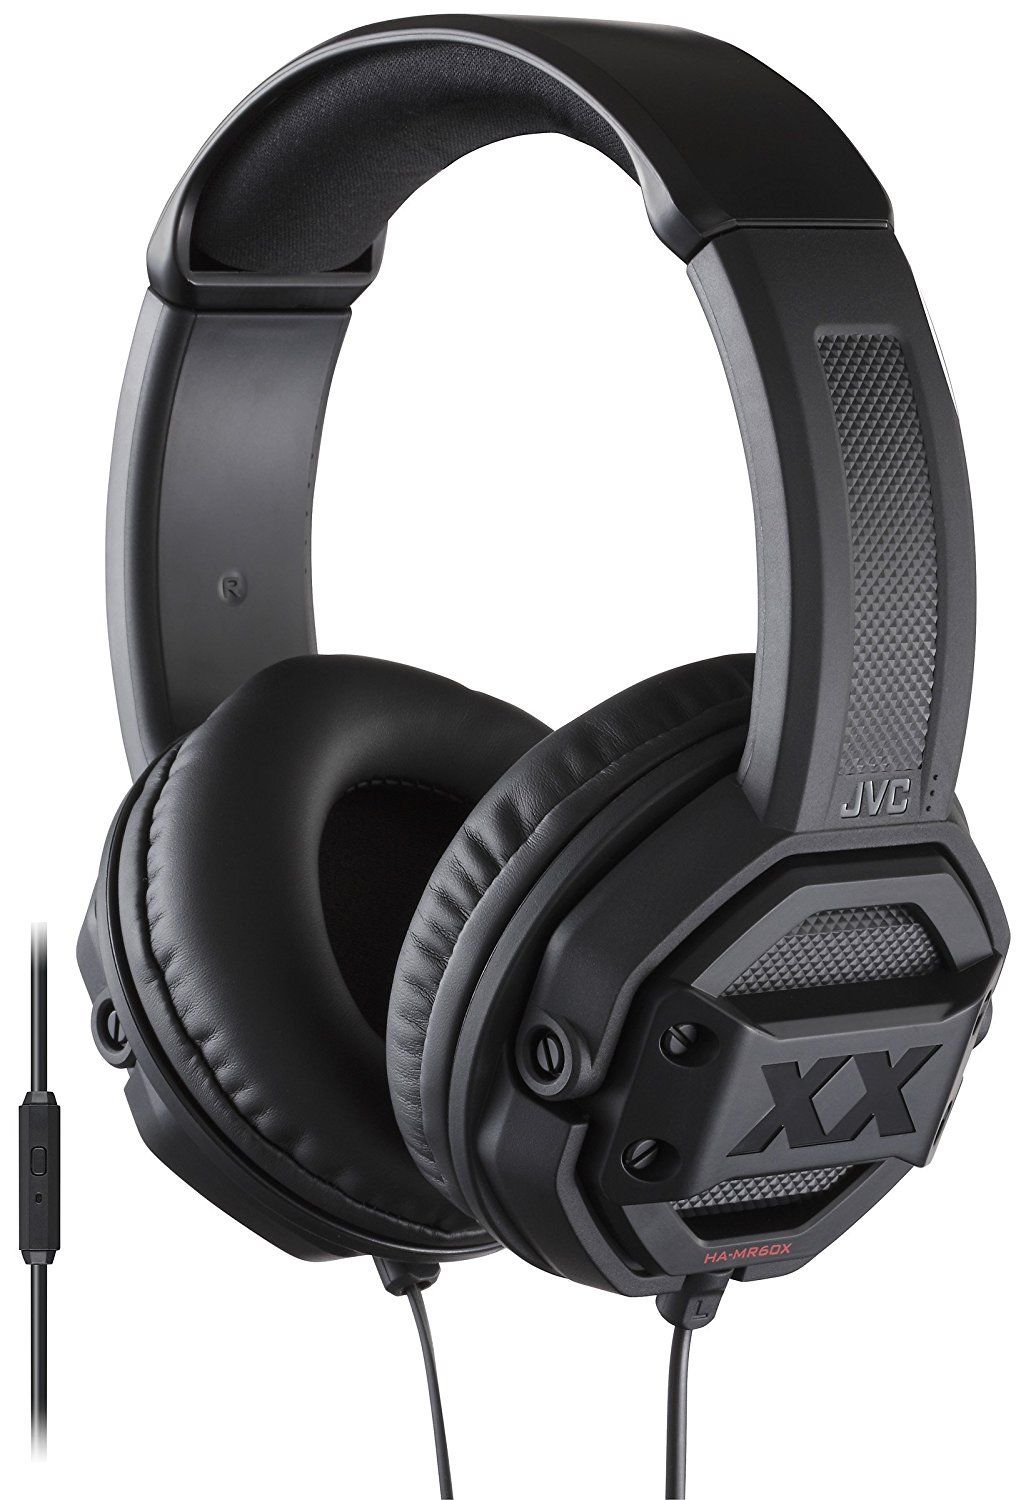 Jvc Xtreme Xplosives Ha-mr60x Over-ear Headphones Black Iphone Android Ipod - jvc - ebay.co.uk